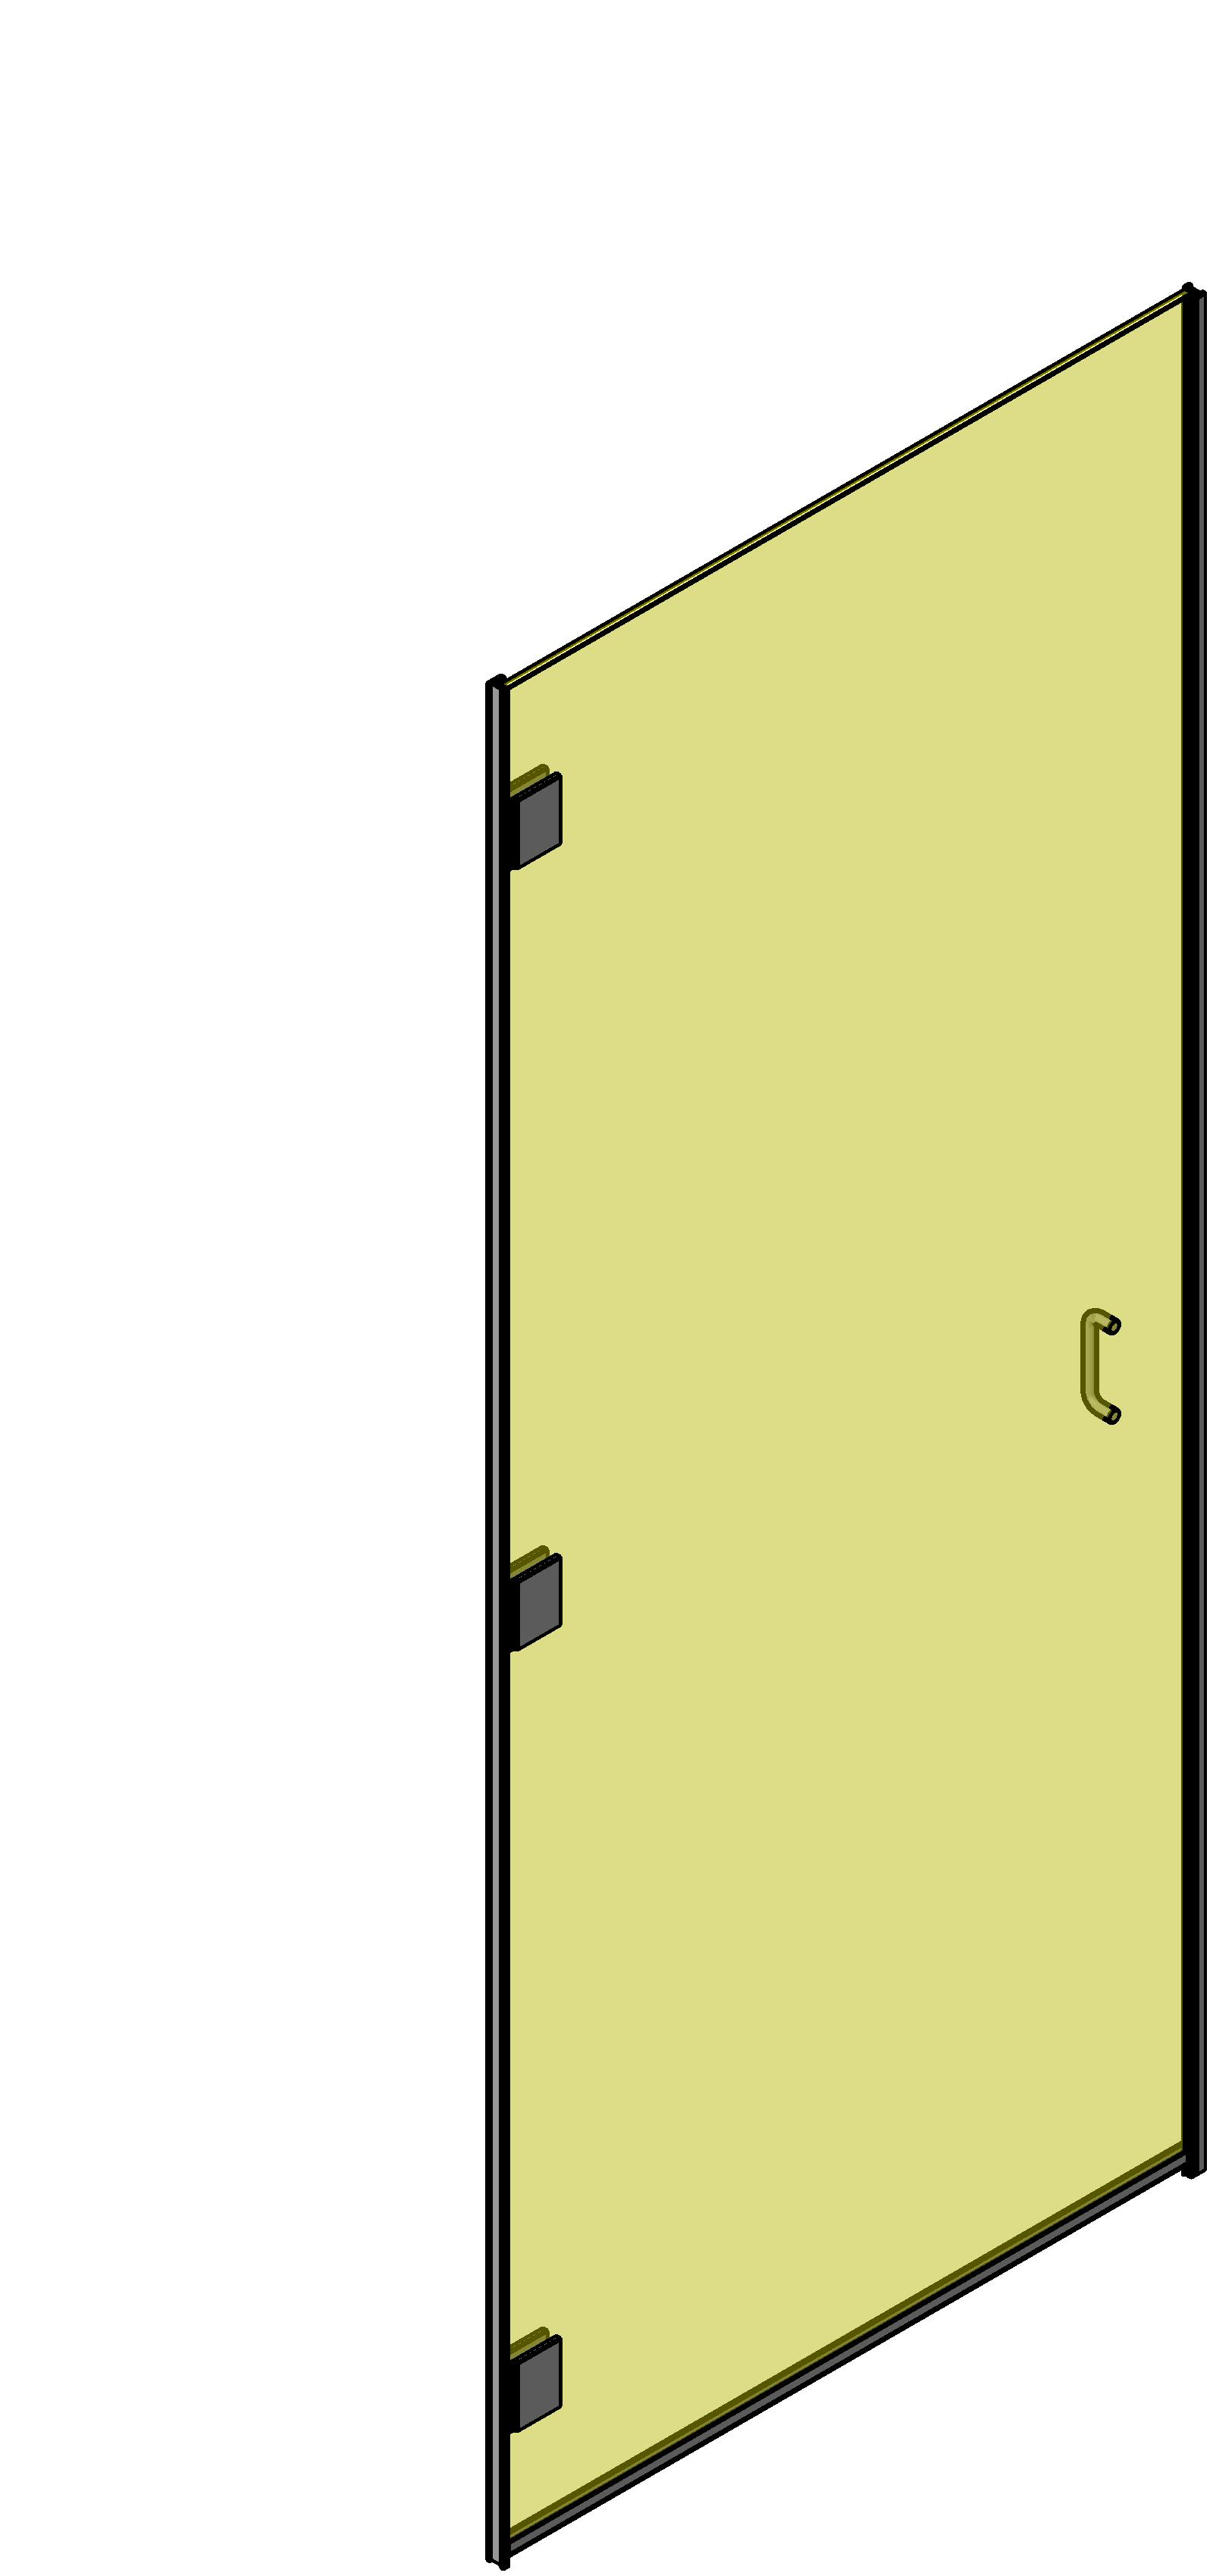 Interior Doors - How To Information | eHow.com